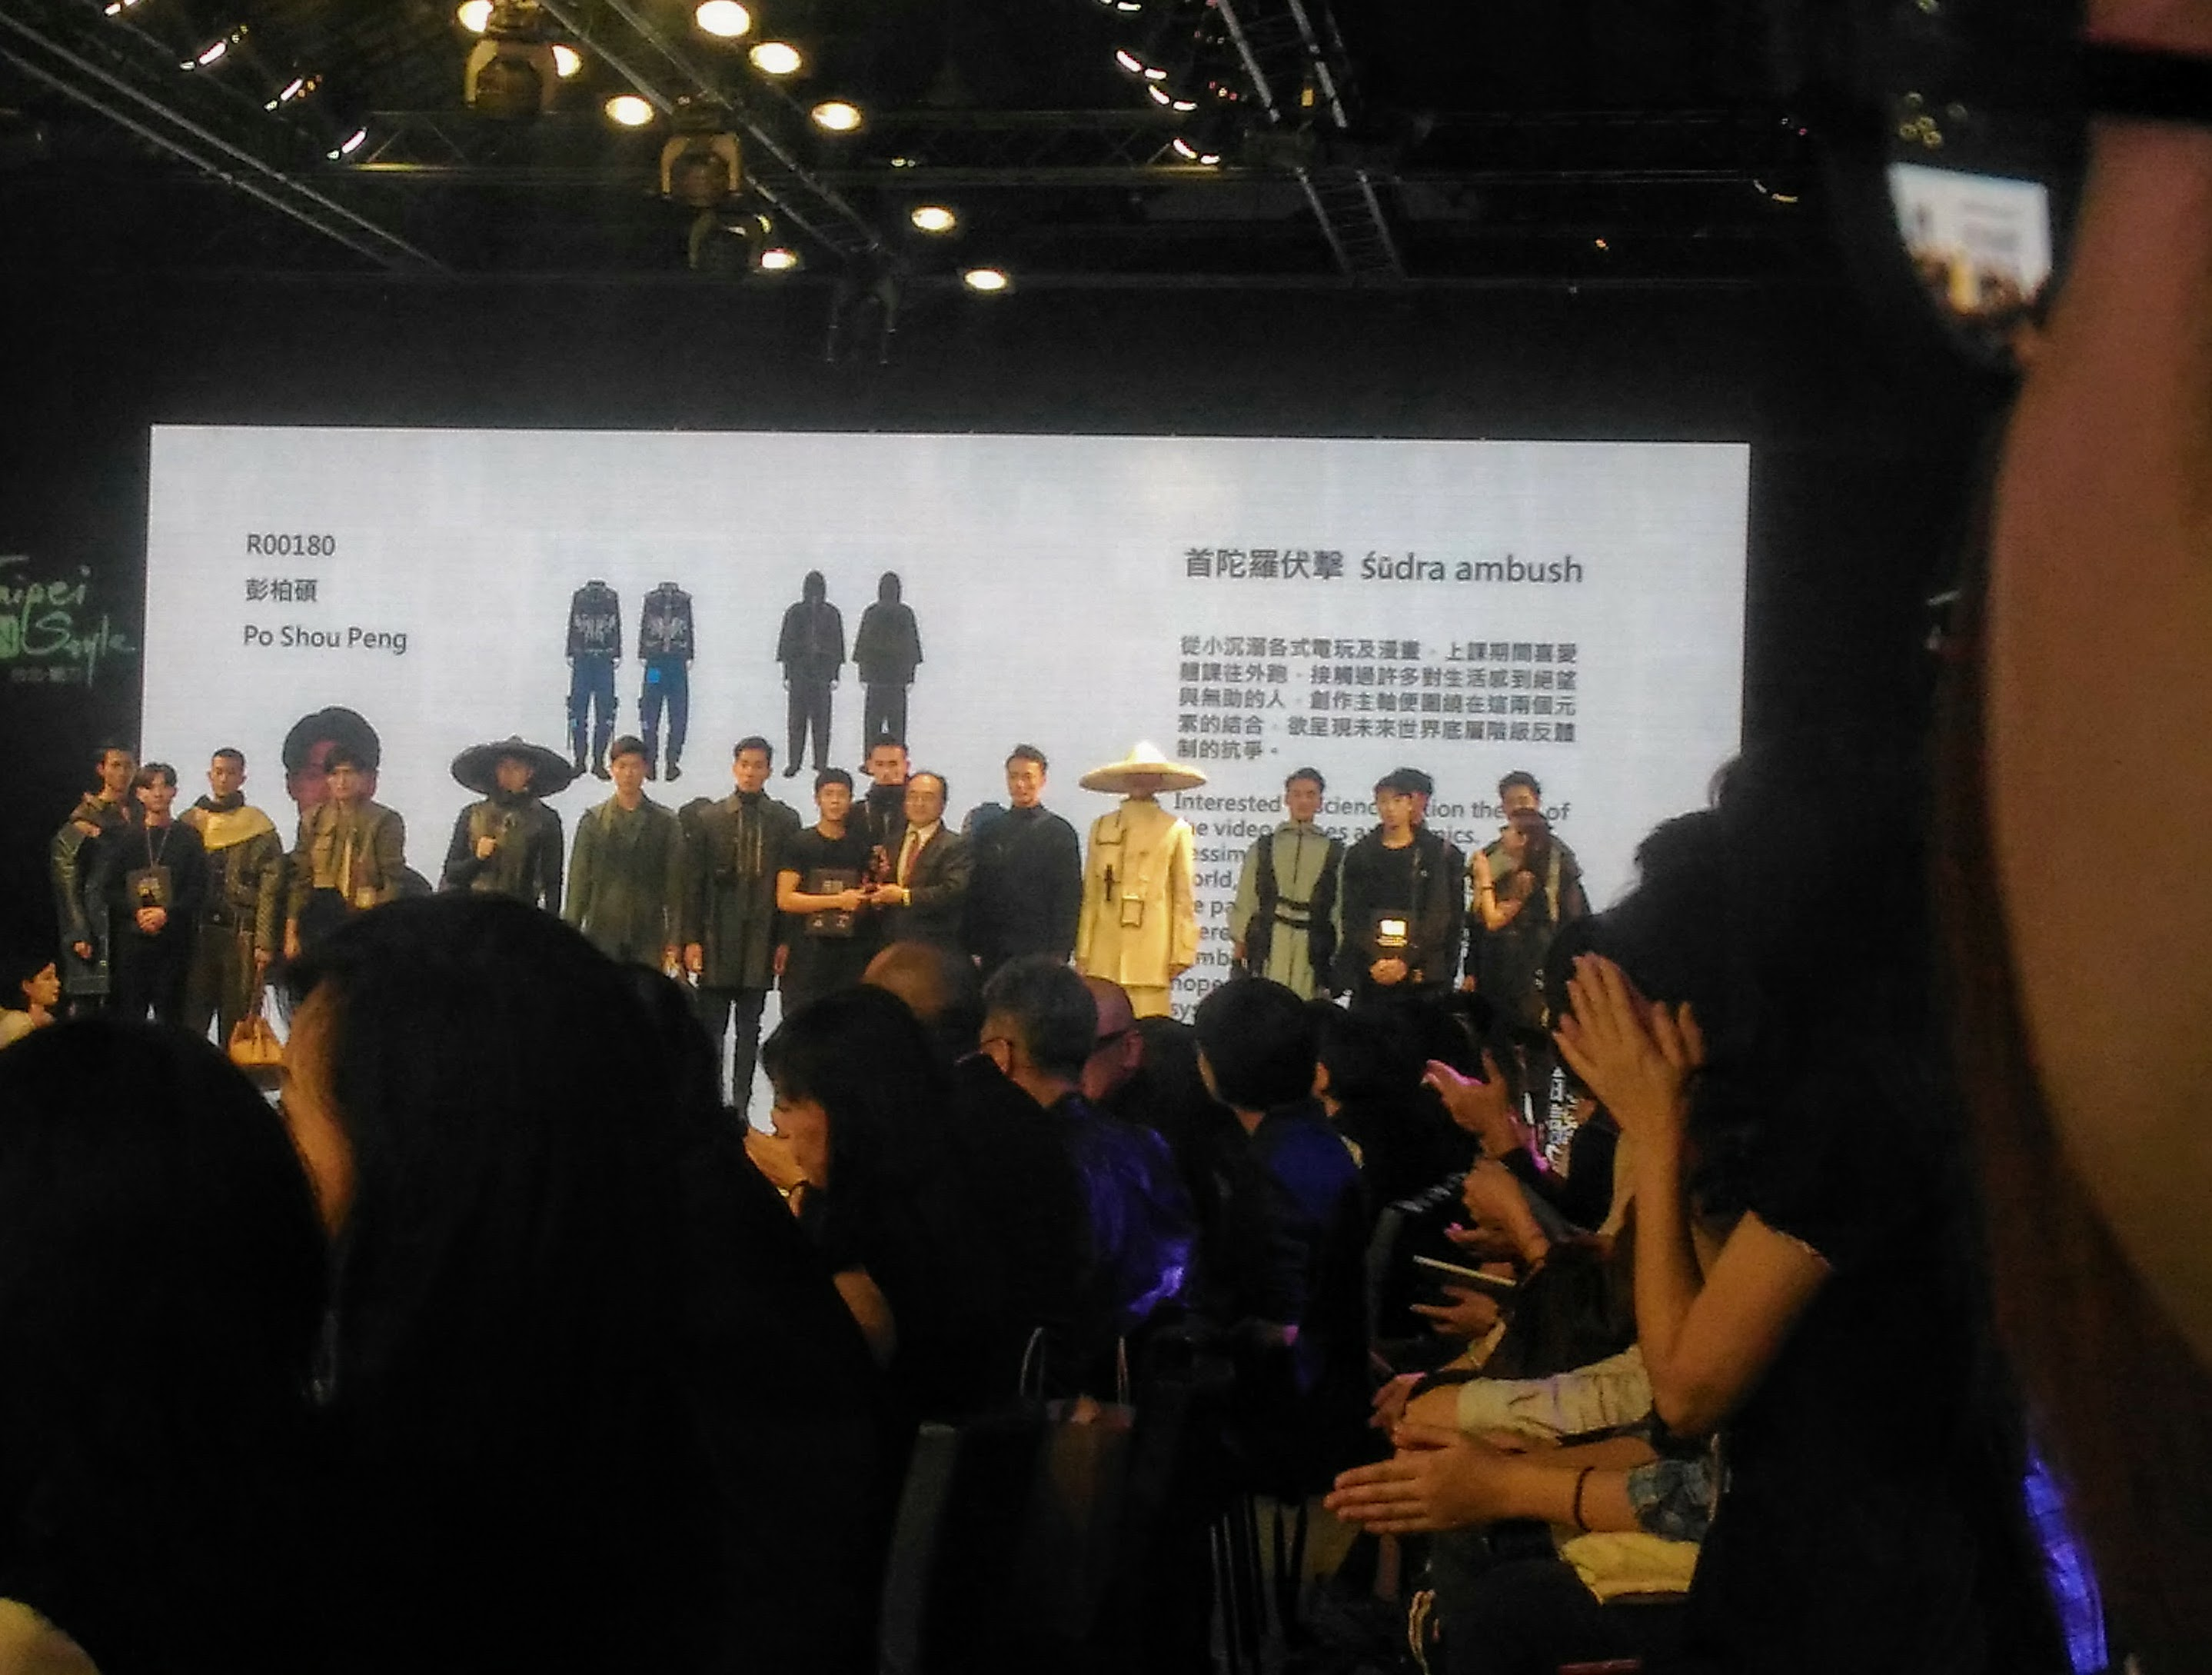 Taiwanese designer, Po Sheng Peng's, collection, Sūdra Ambush, was awarded the 2017 Taiwan Fashion Design Award.